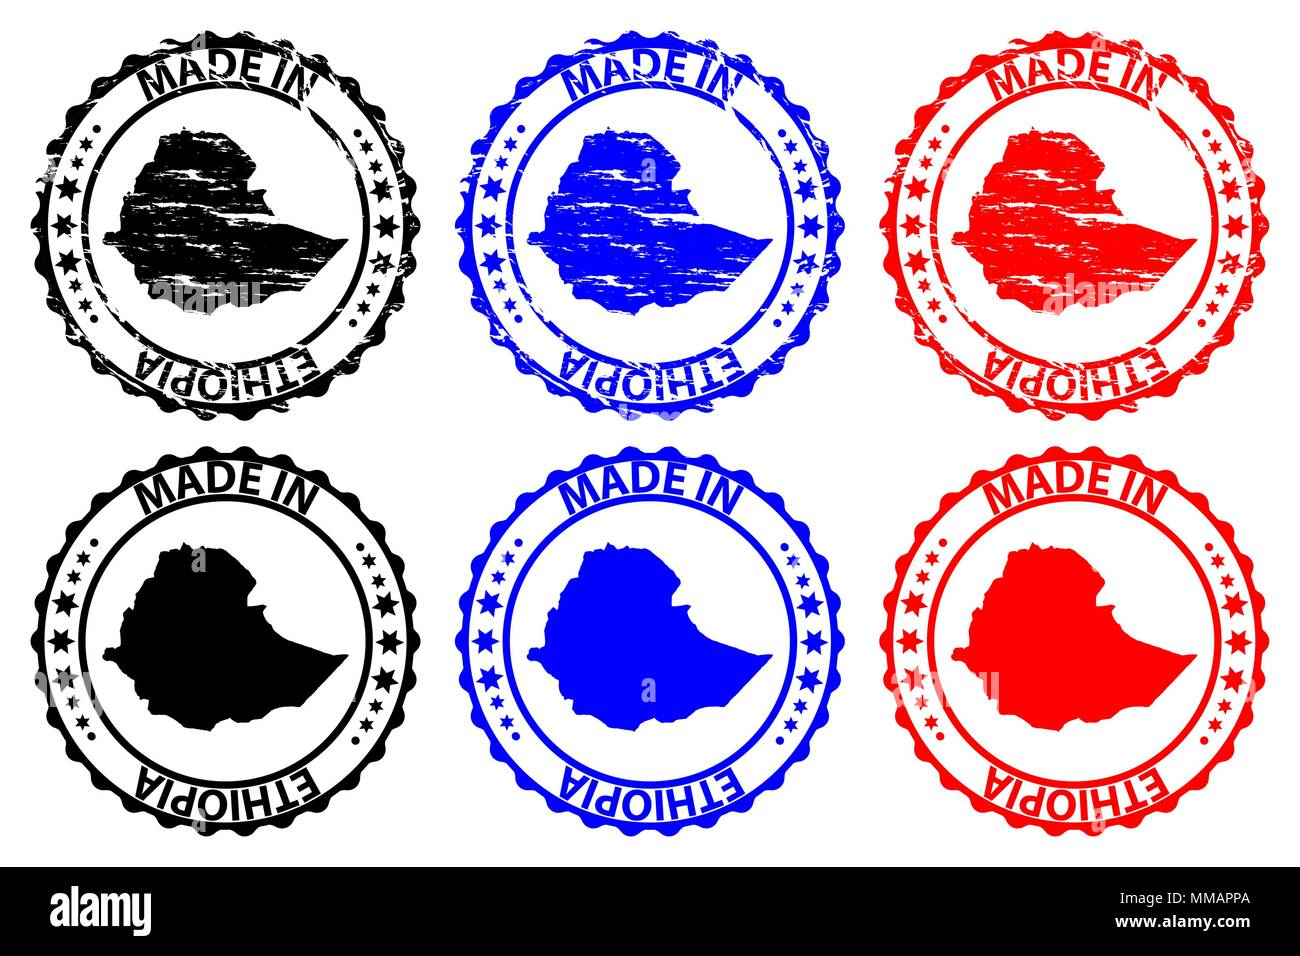 Made in Ethiopia - rubber stamp - vector, Ethiopia map pattern - black, blue and red - Stock Vector